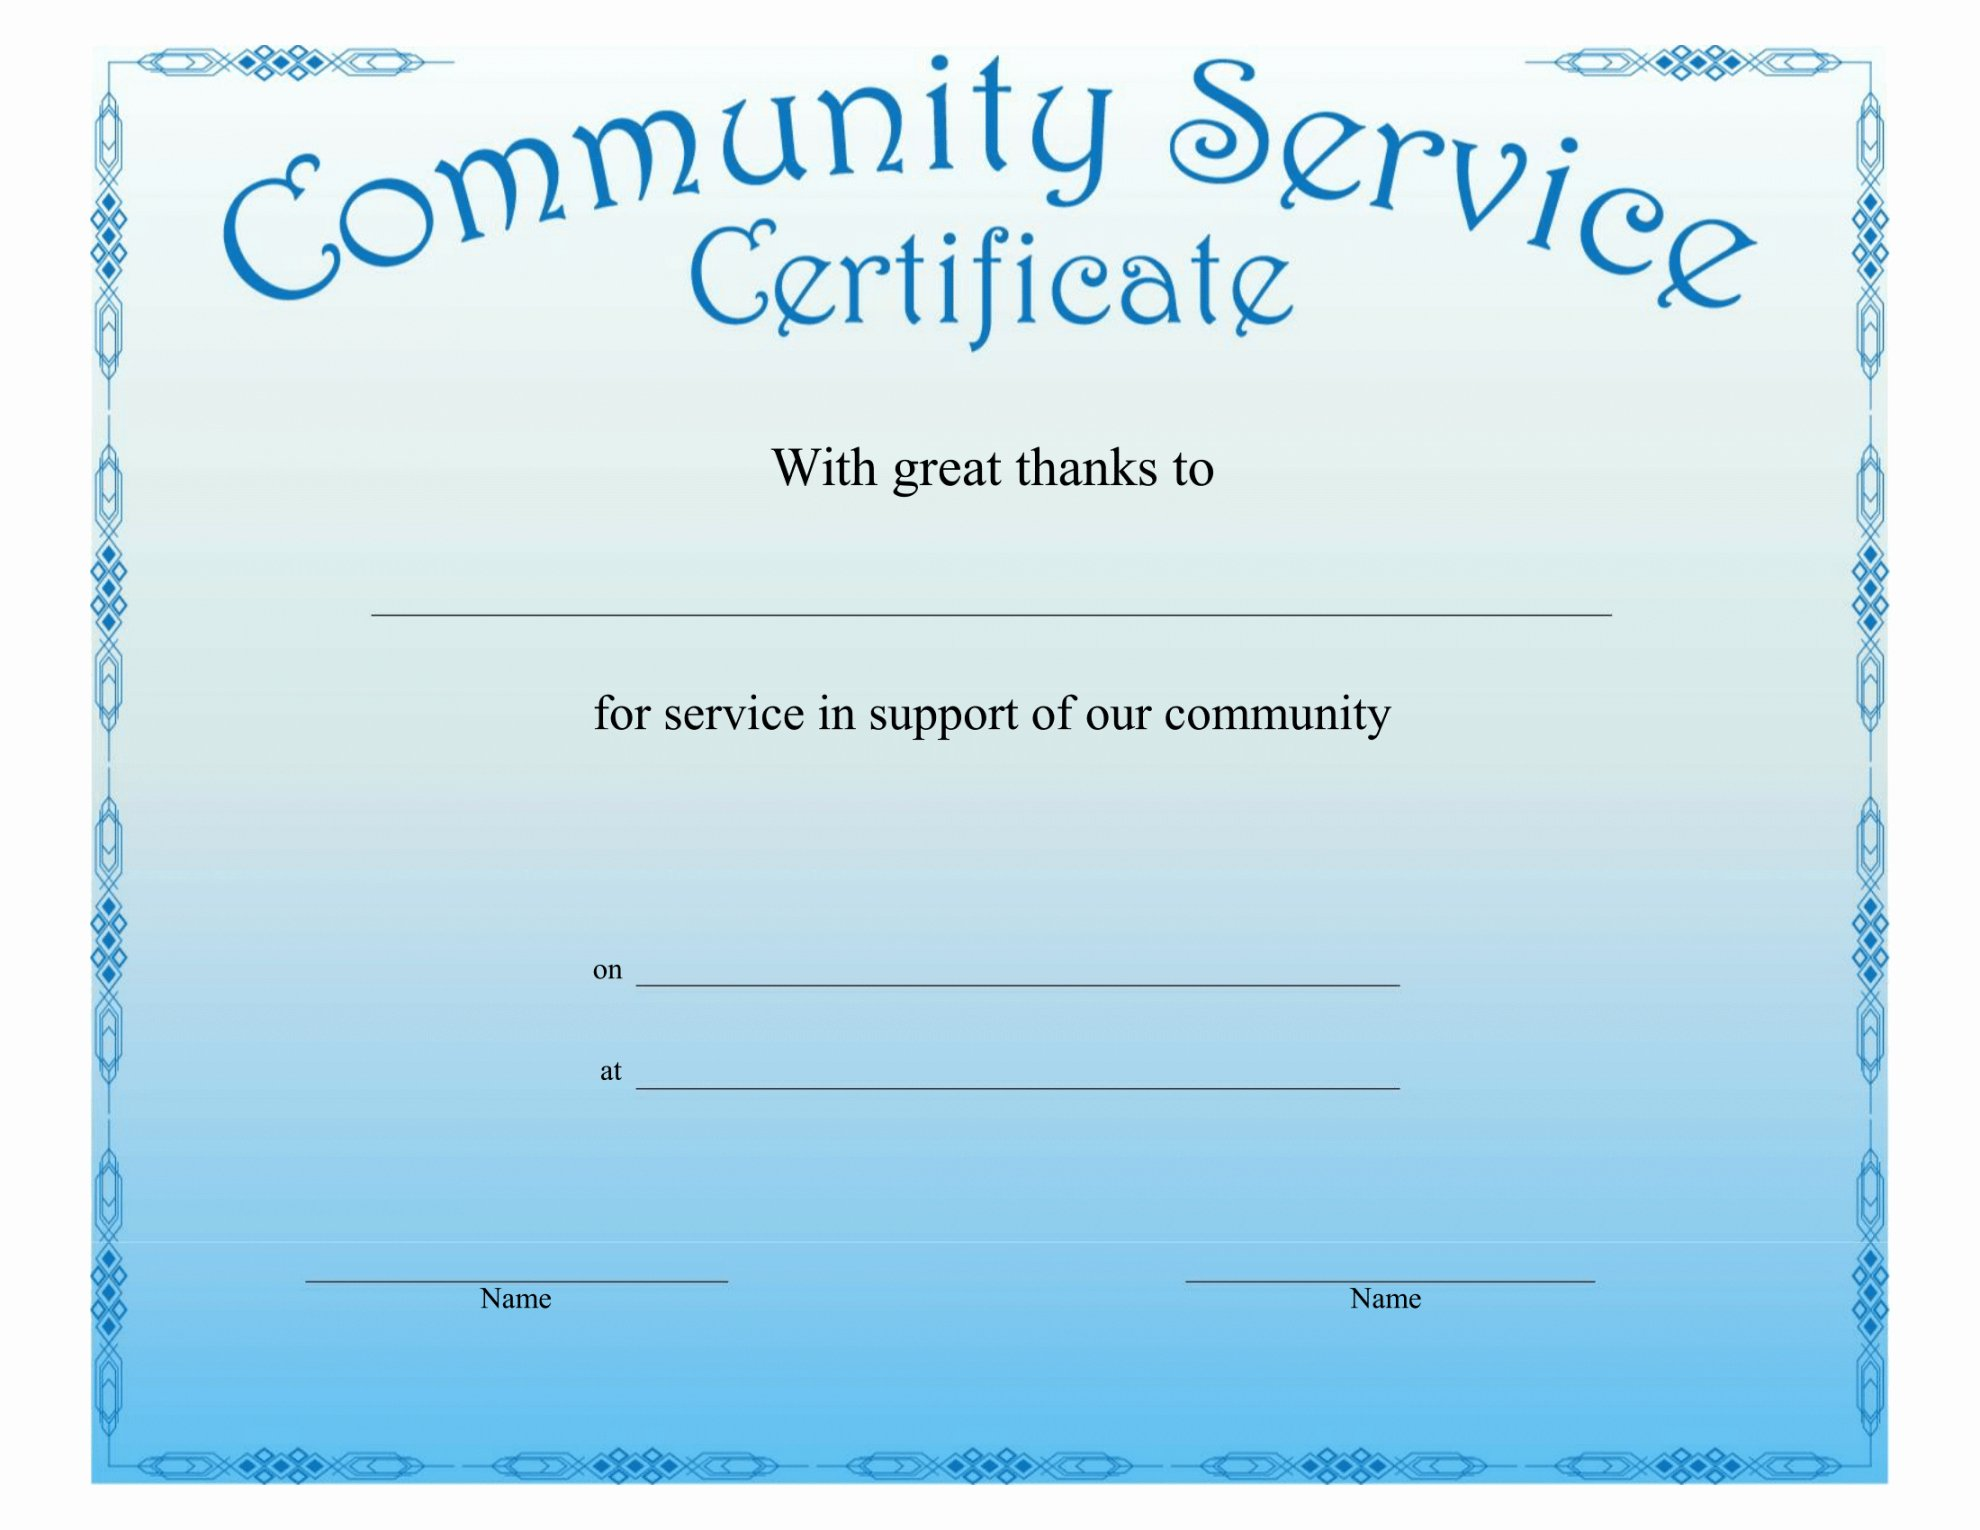 Certificate Of Service Example Unique Printable Munity Service Certificate Free Download